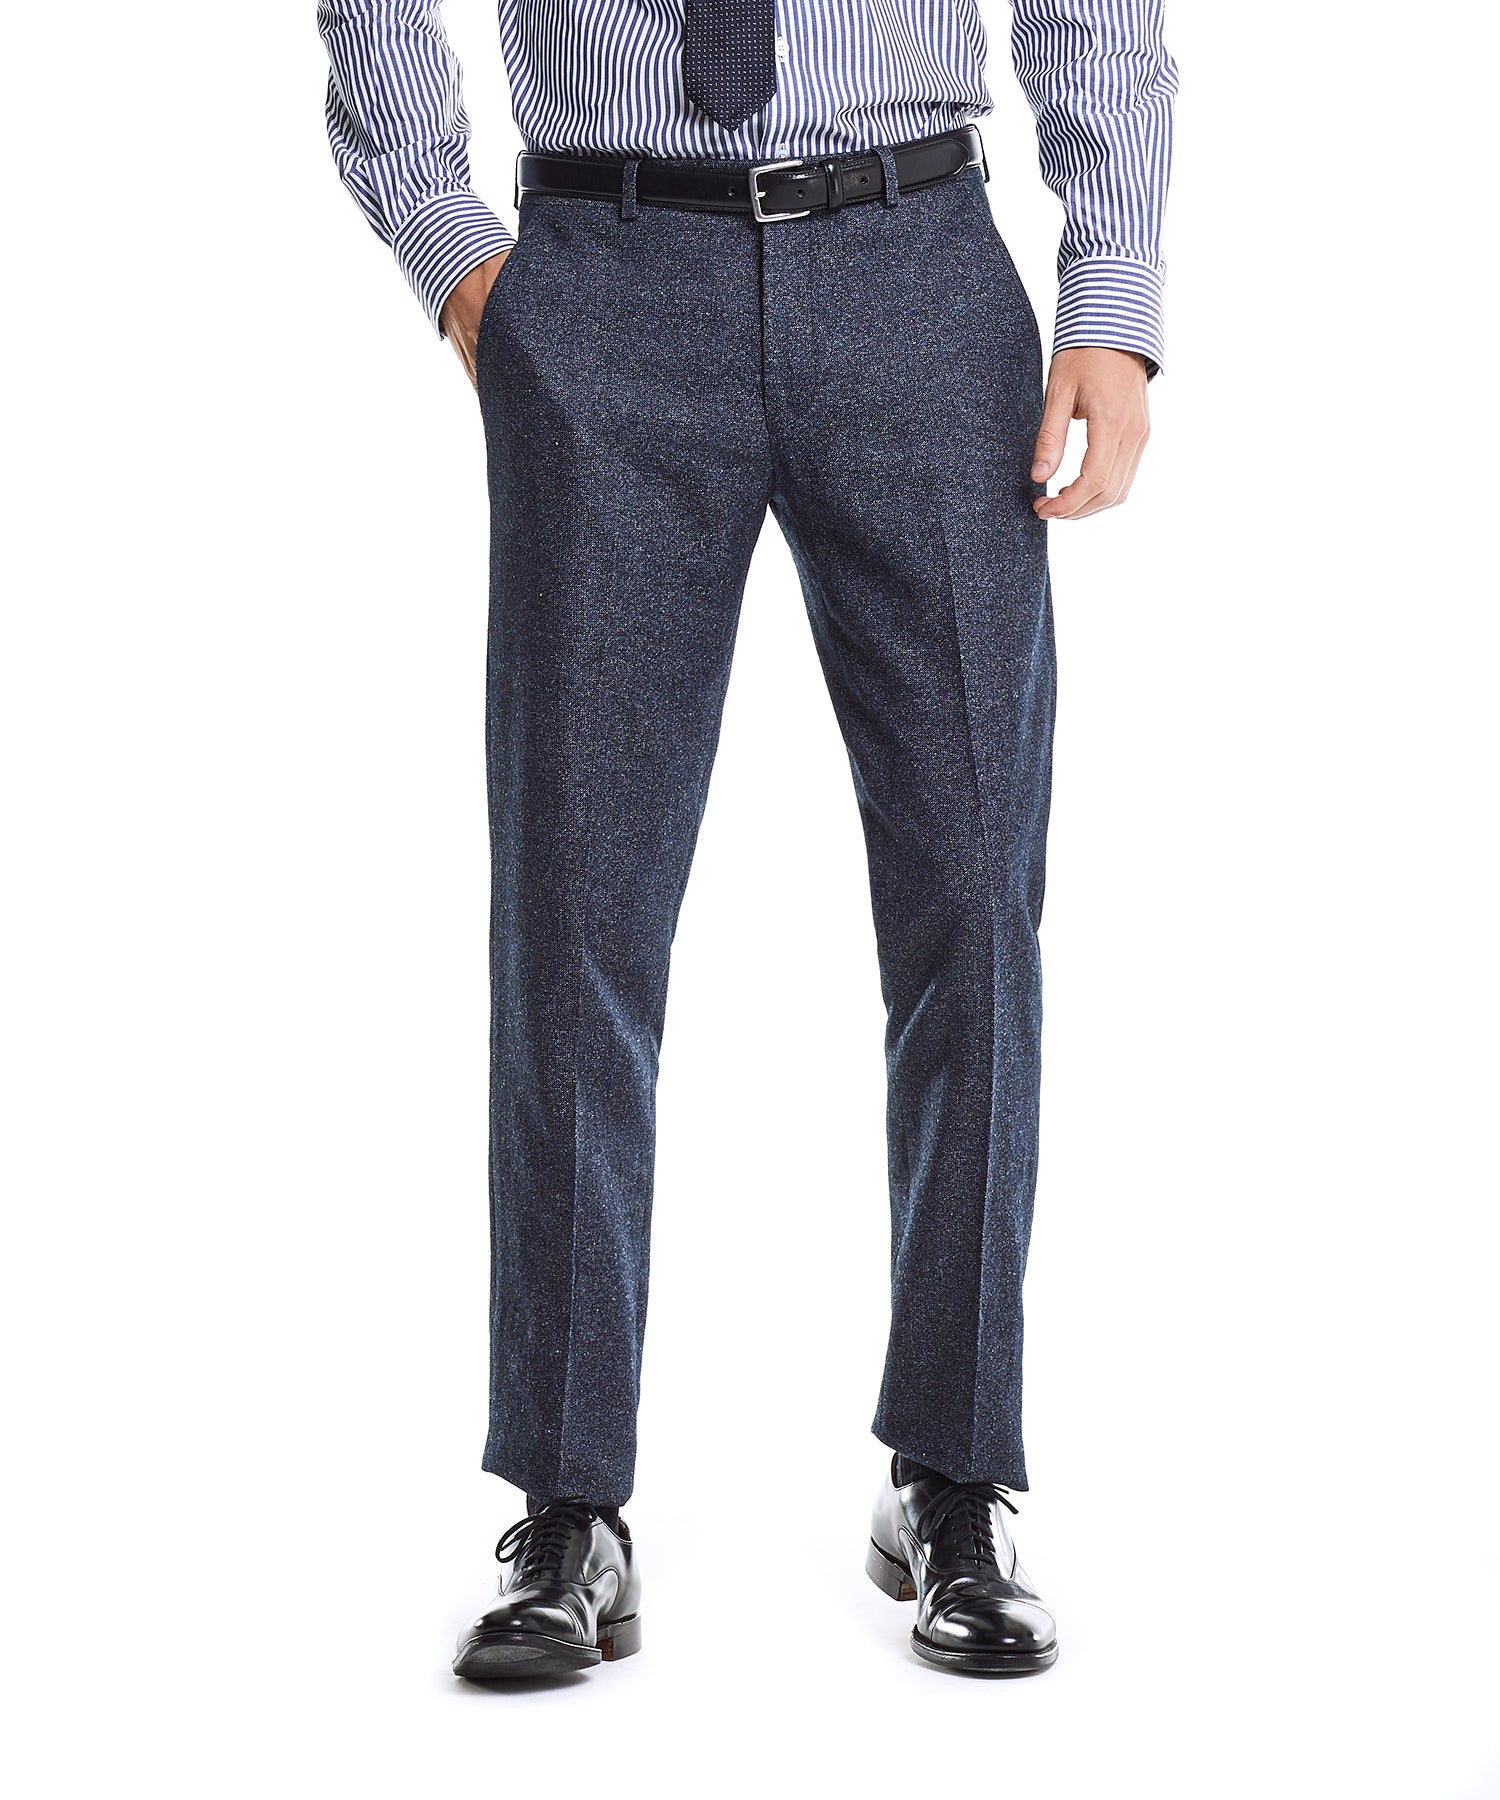 White label Italian Heather Tweed Trouser in Navy